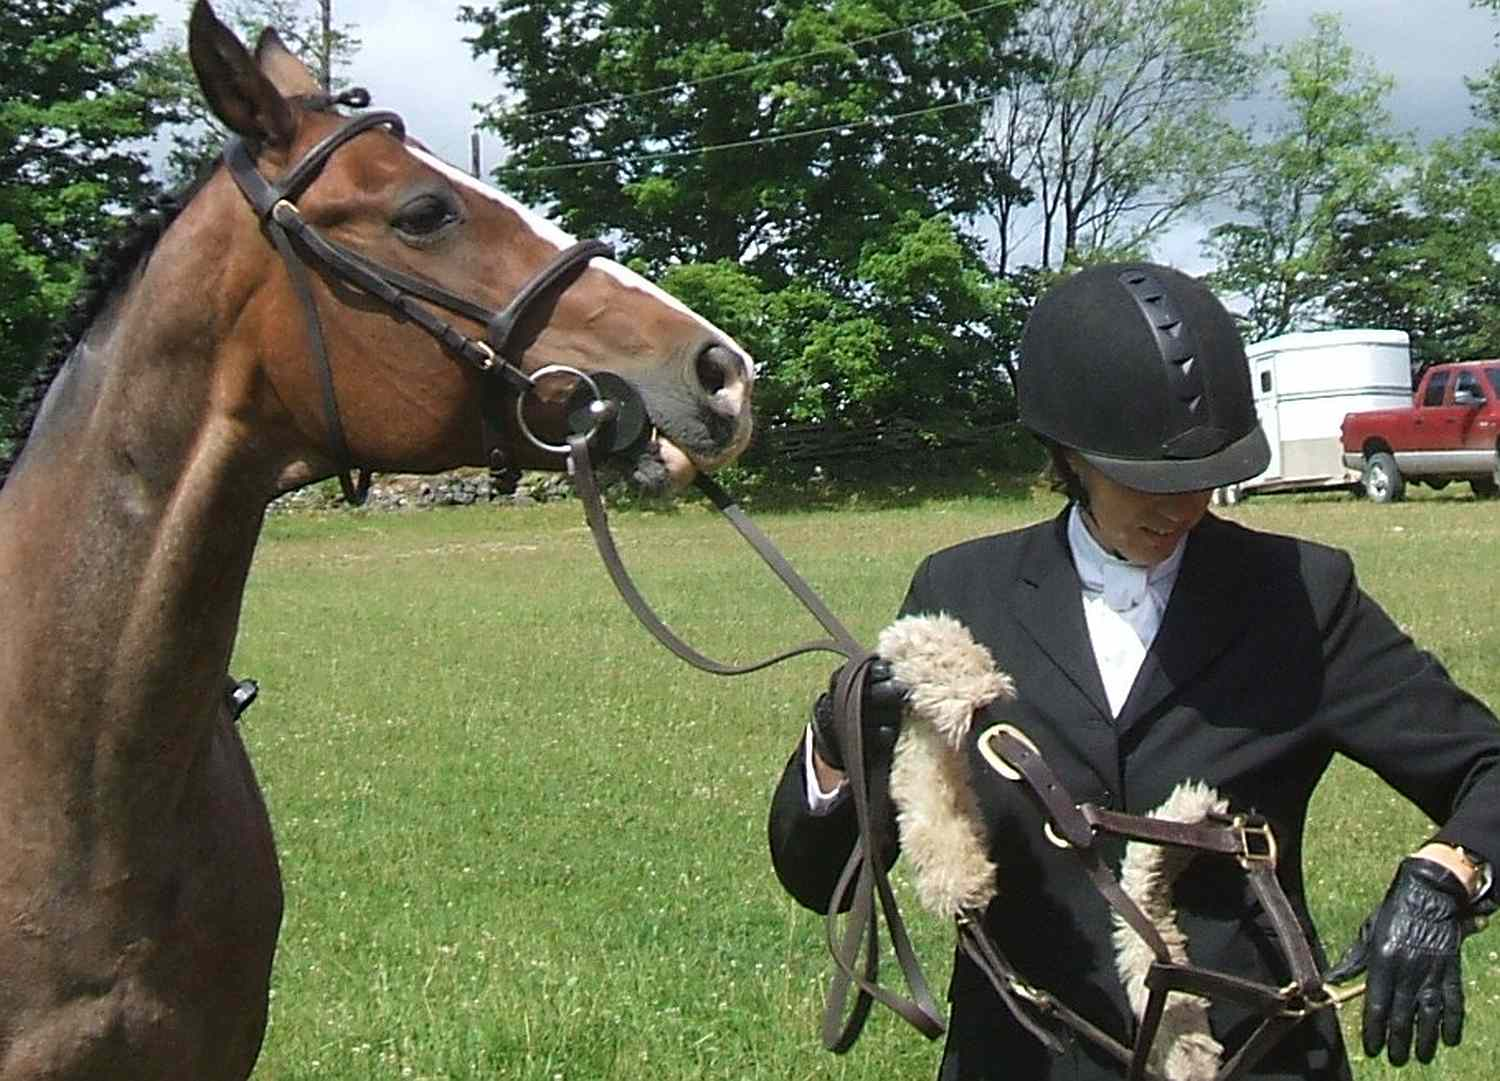 Horse with rider in English riding apparel